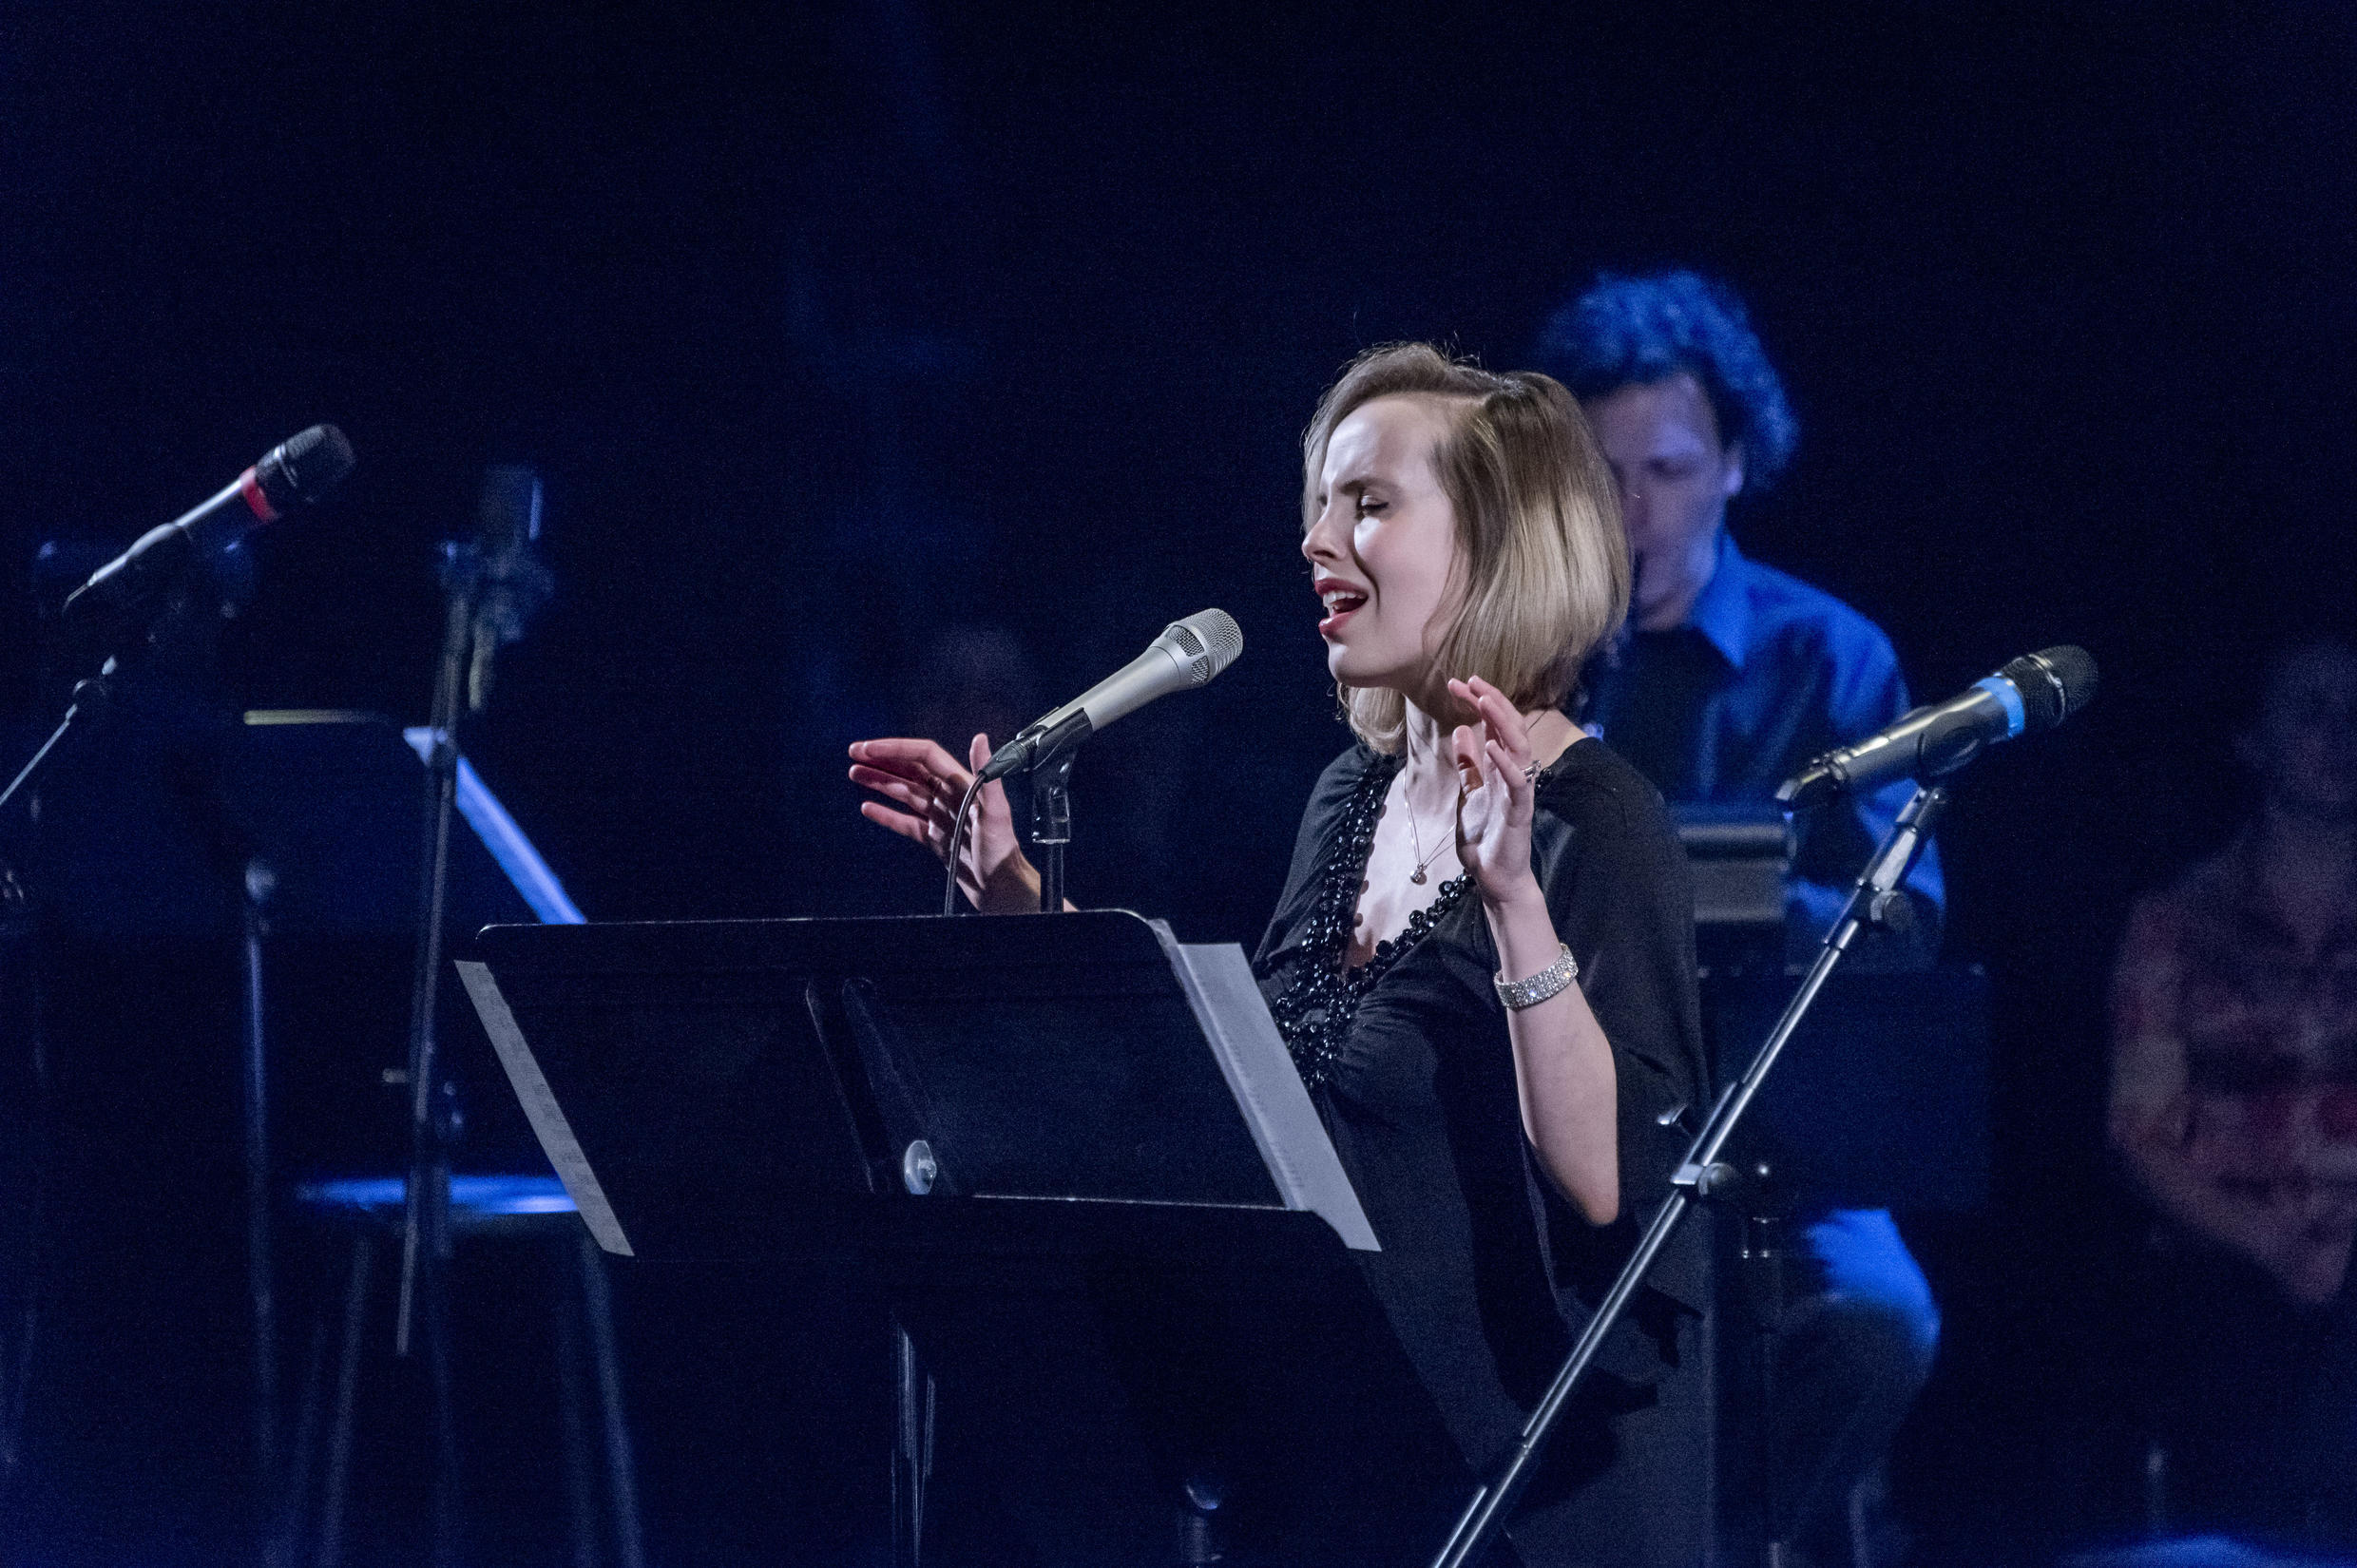 Sophie Milman, Canadian jazz singer born to a Russian Jewish family, performs Yiddish songs from the album